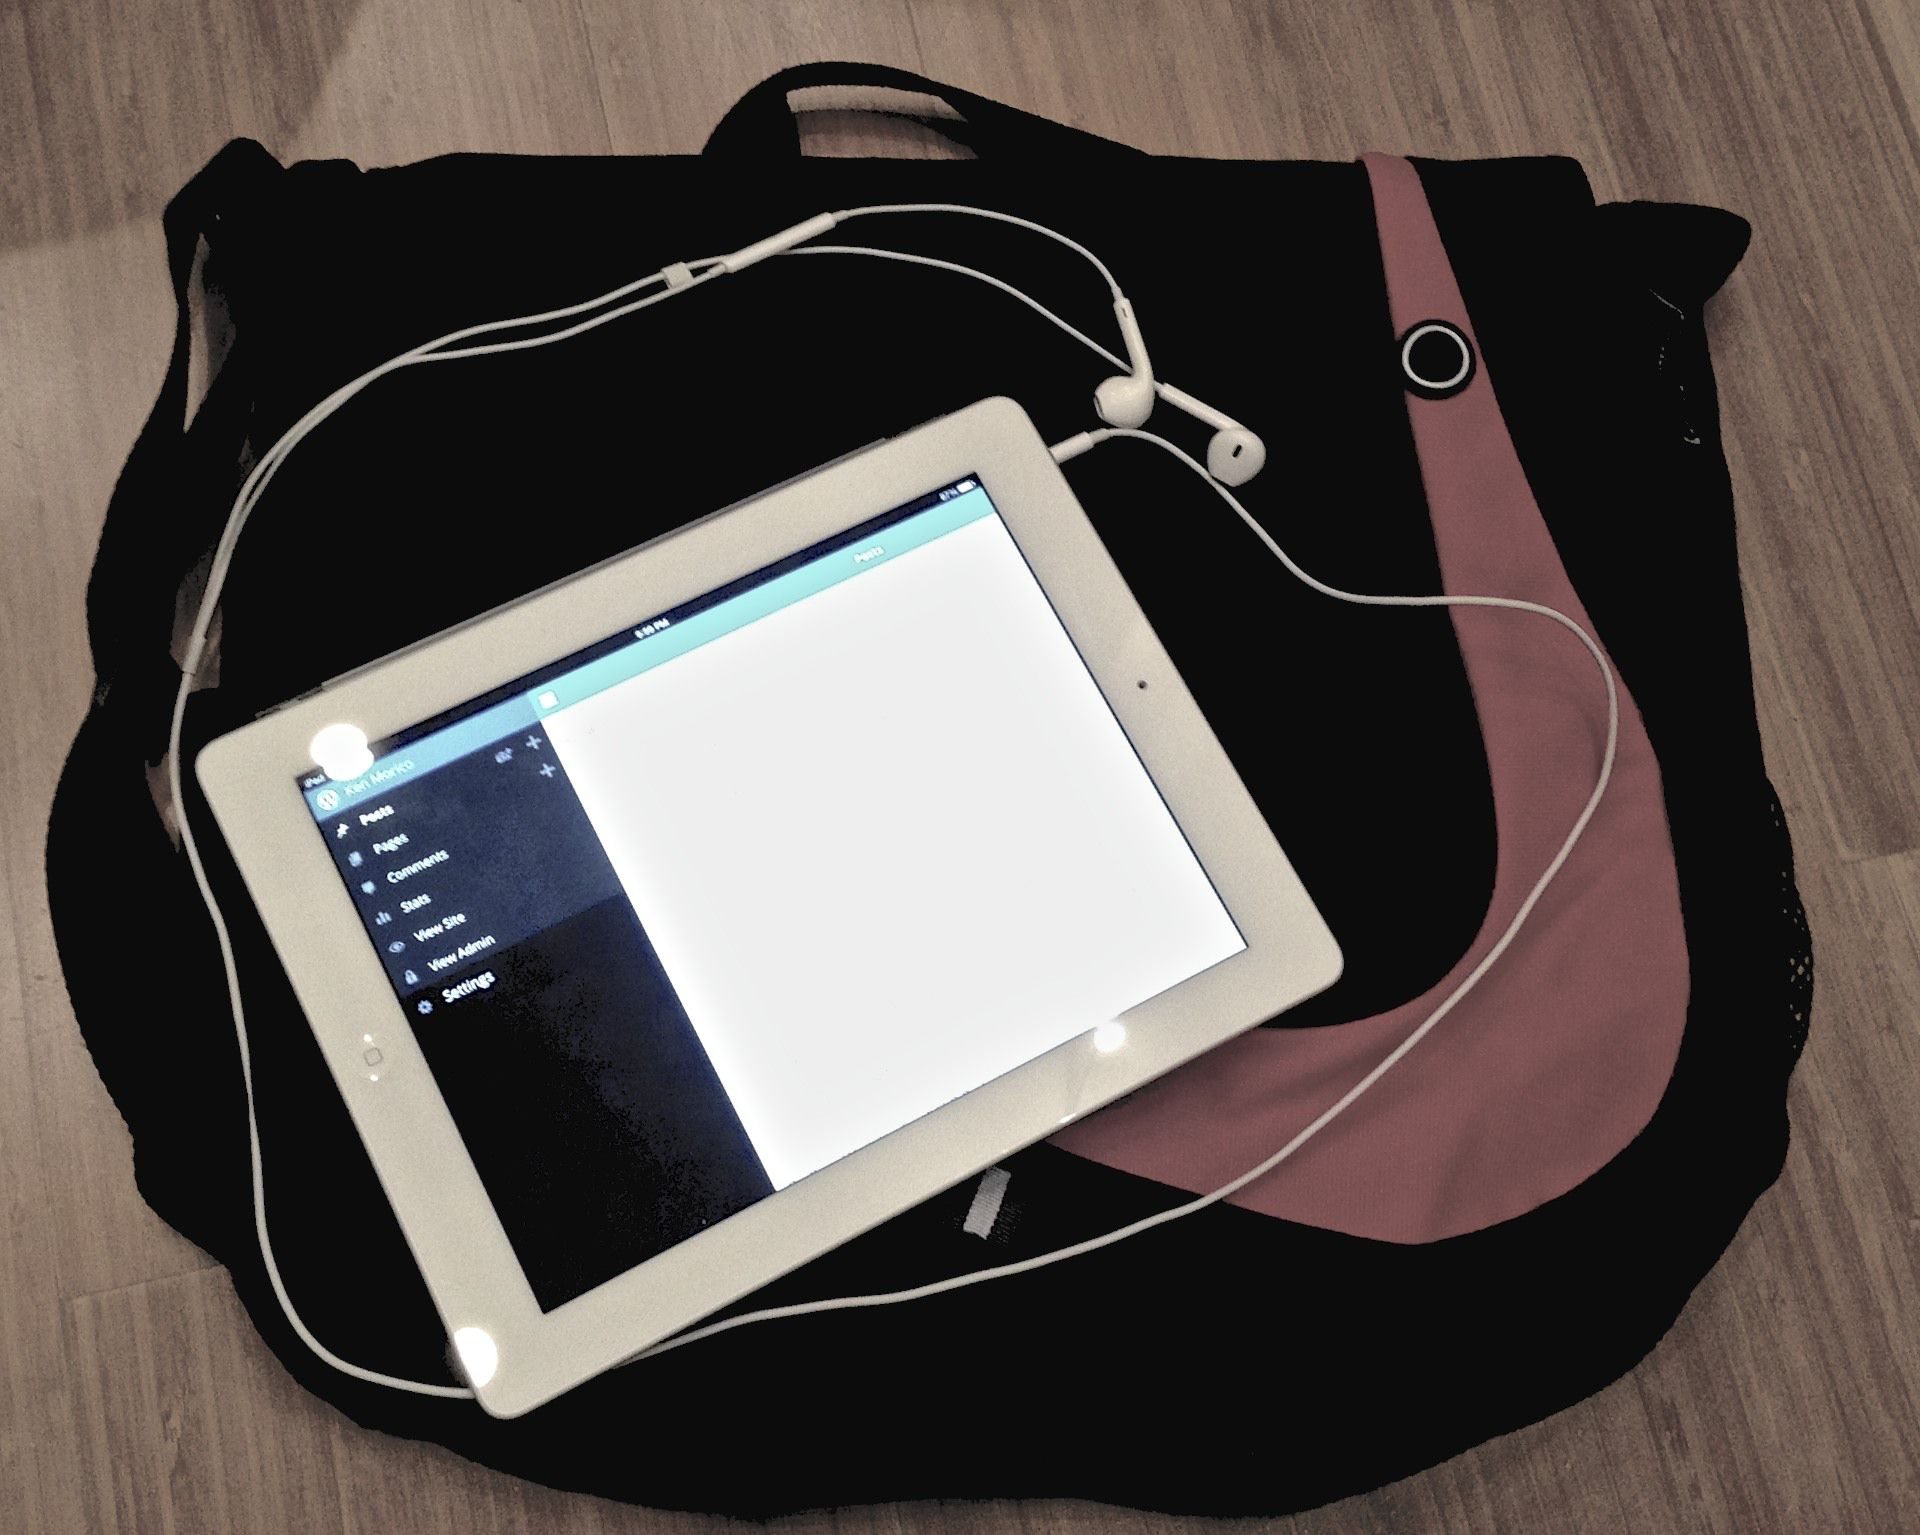 What's in my bag - iPad, Apple Earbuds, small messenger bag